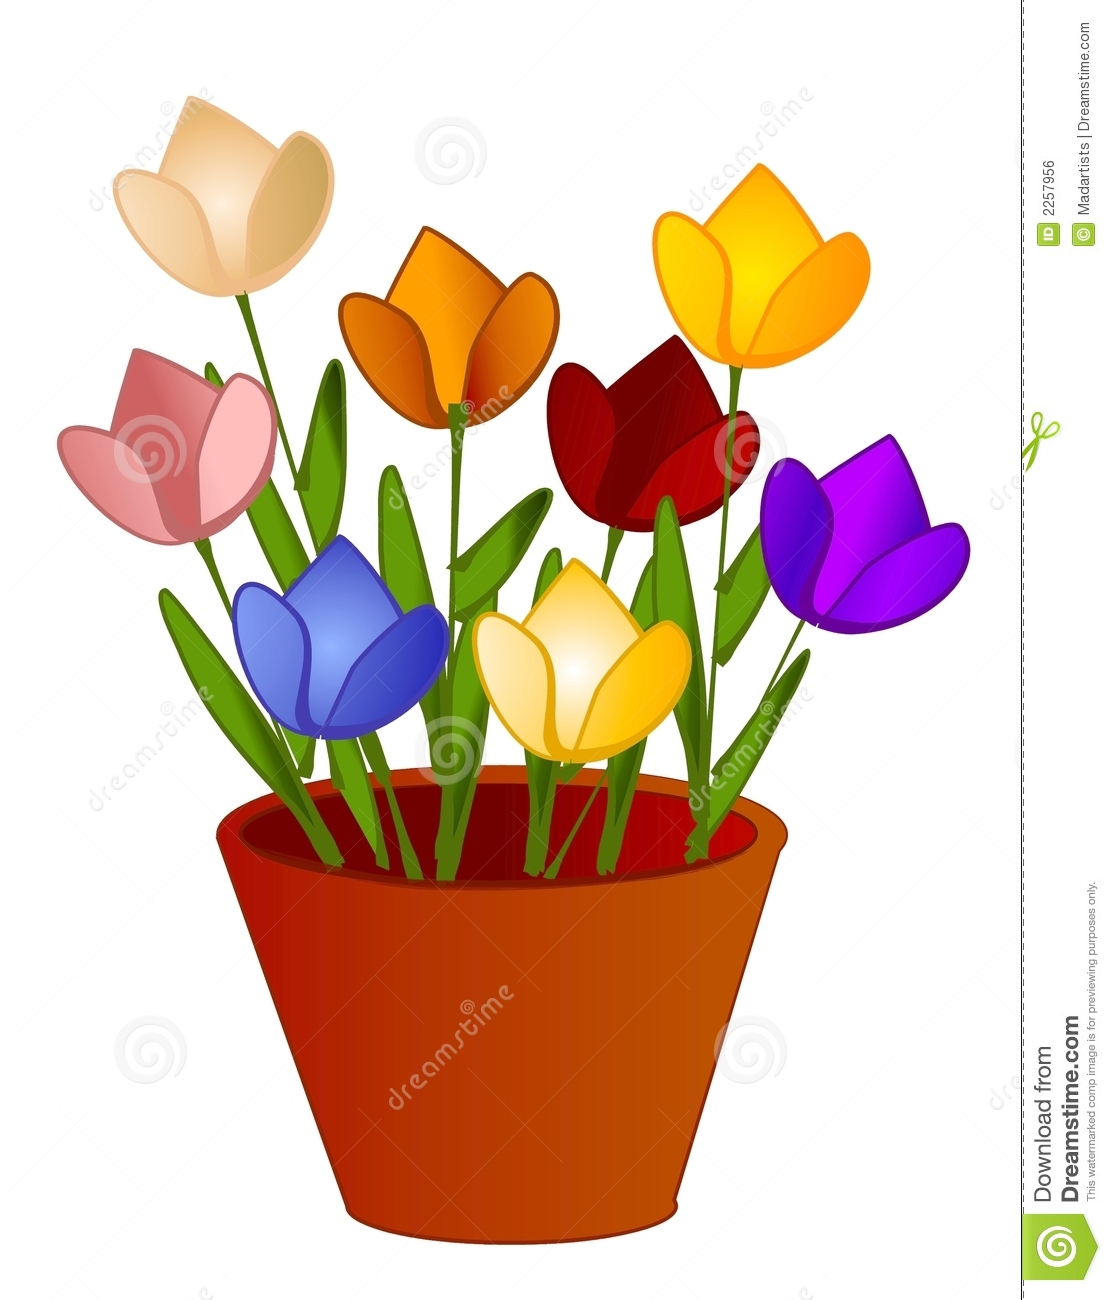 Isolated Tulips Flowers In Pot Royalty Free Stock Image